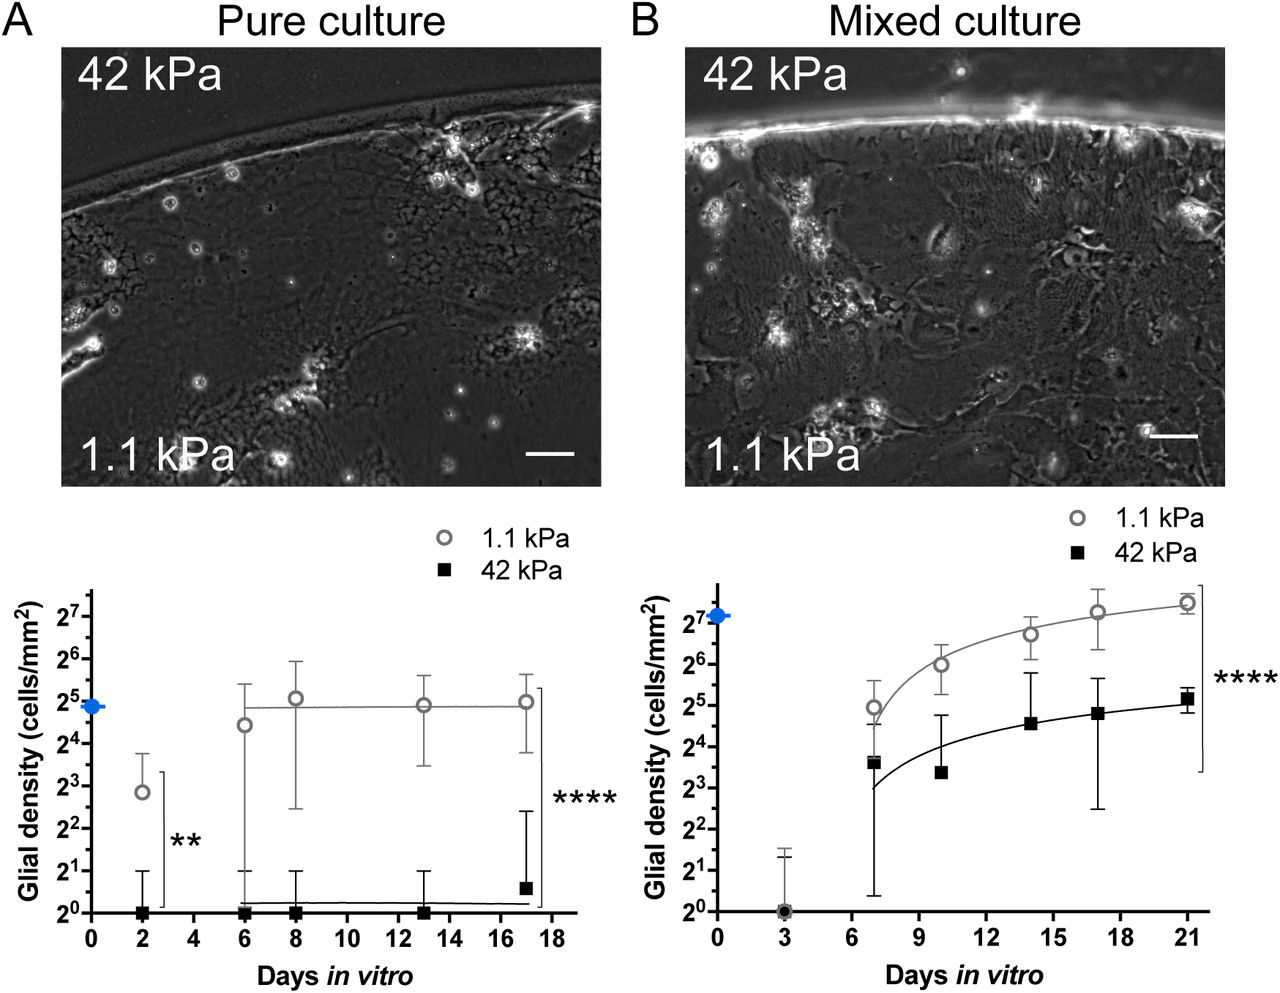 """Glial cell initial adhesion and proliferation on poly-L-lysine/laminin coated substrates in DMEMs culture medium. A - Glial cells from pure culture at the stiff (42 kPa) - soft (1.1 kPa) frontier on a """"concentric"""" pattern of rigidity at 17 DIV, and the evolution of the cell density over time (days in vitro, DIV) on stiff (black squares) and soft (white circles) regions. ** denotes that the two means are significantly different, p (stiff vs. soft) = 0.0016 (2 DIV); ****, p"""